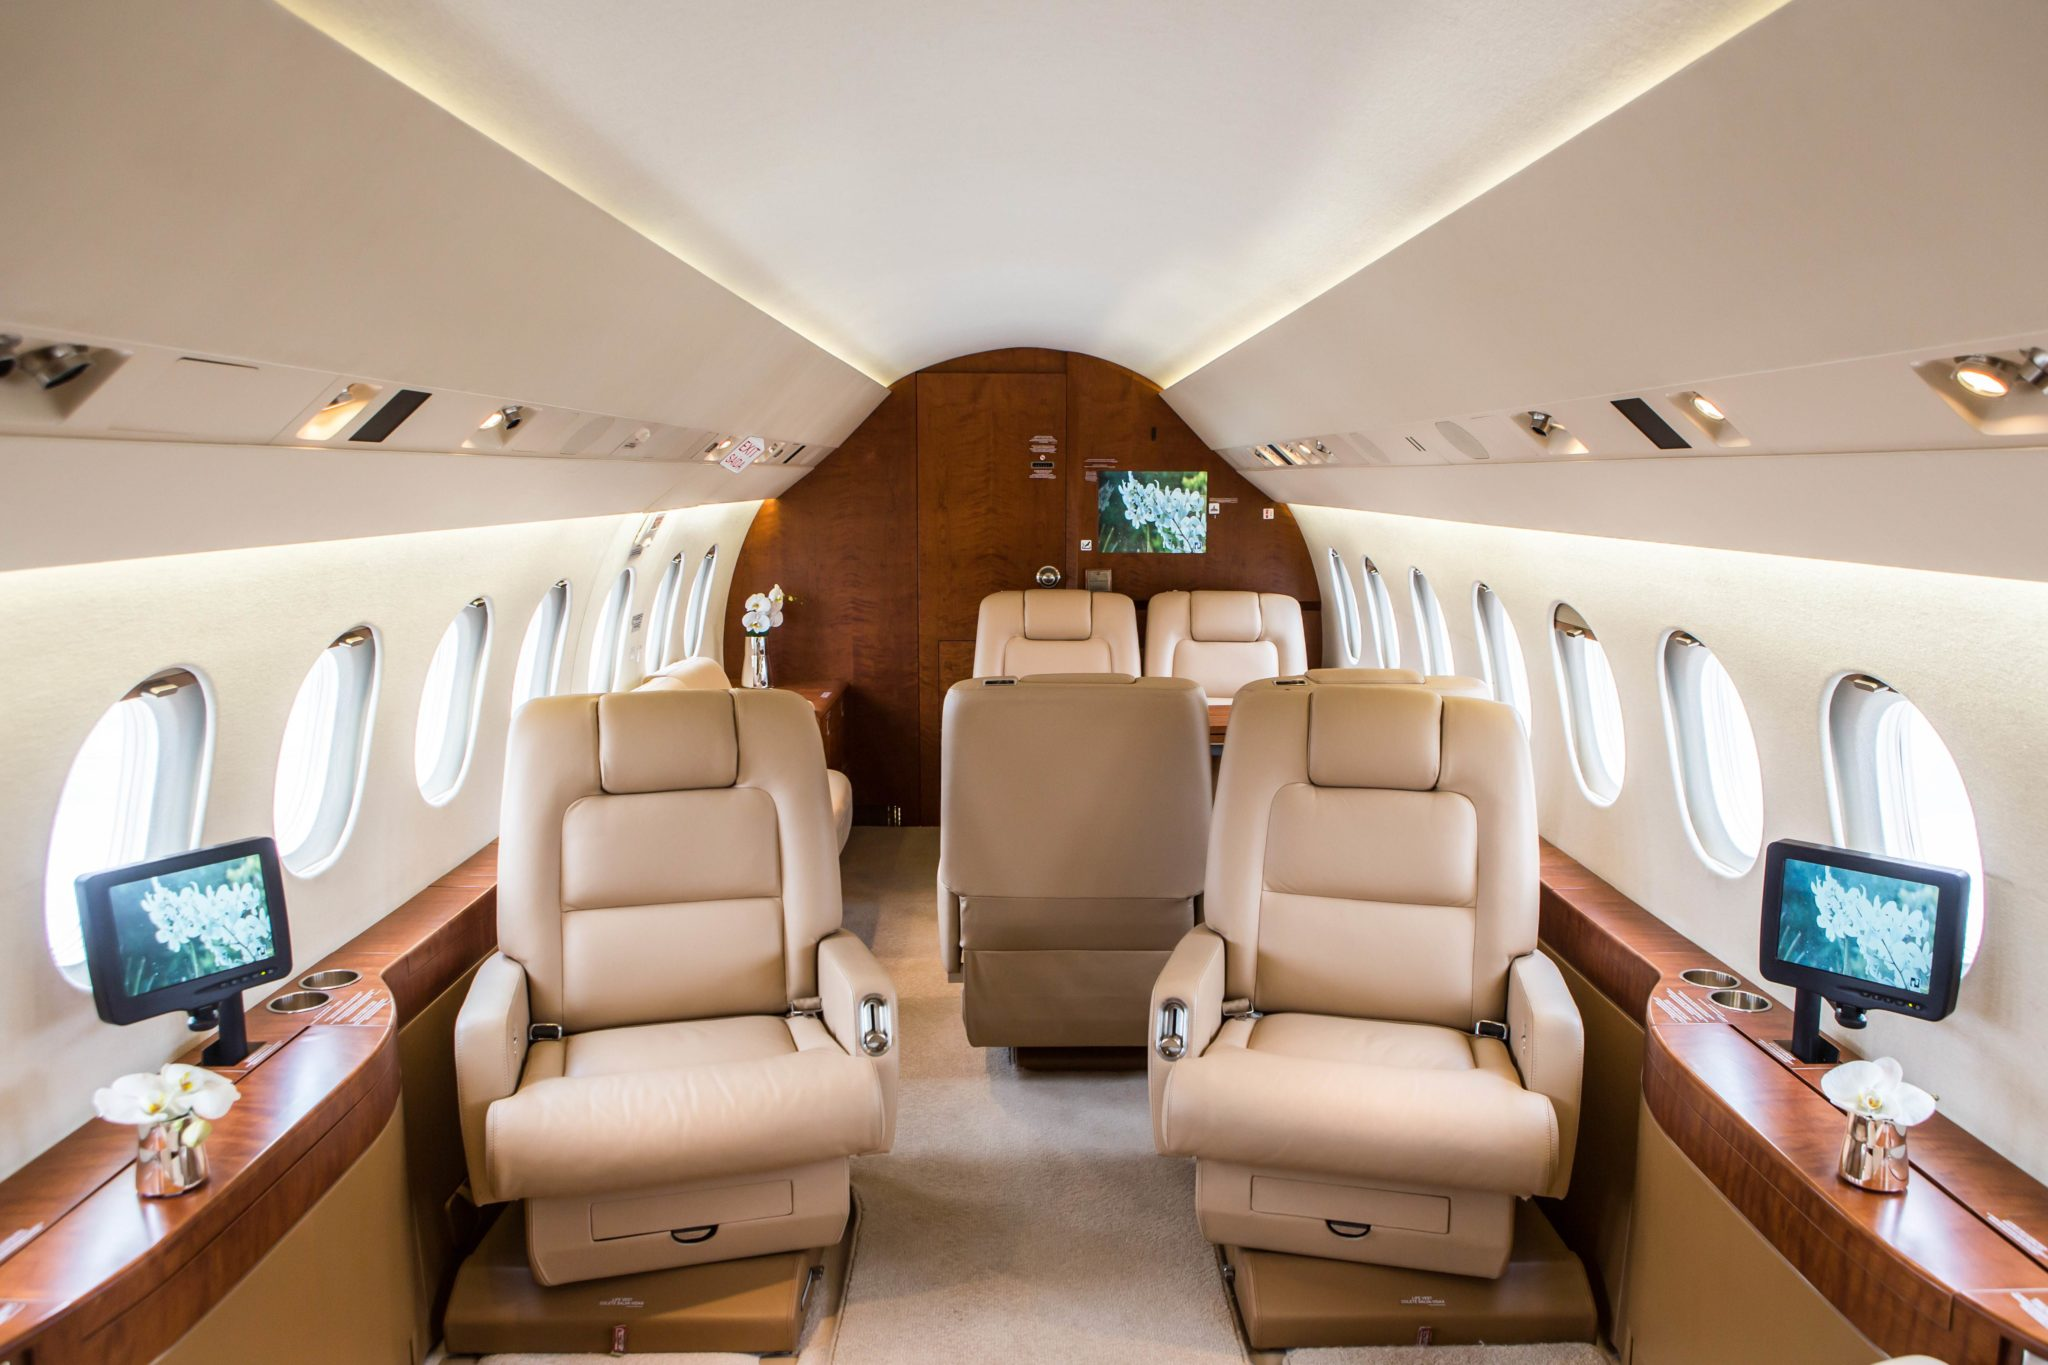 Charter a Falcon 2000EX EASy Jet from JetOptions